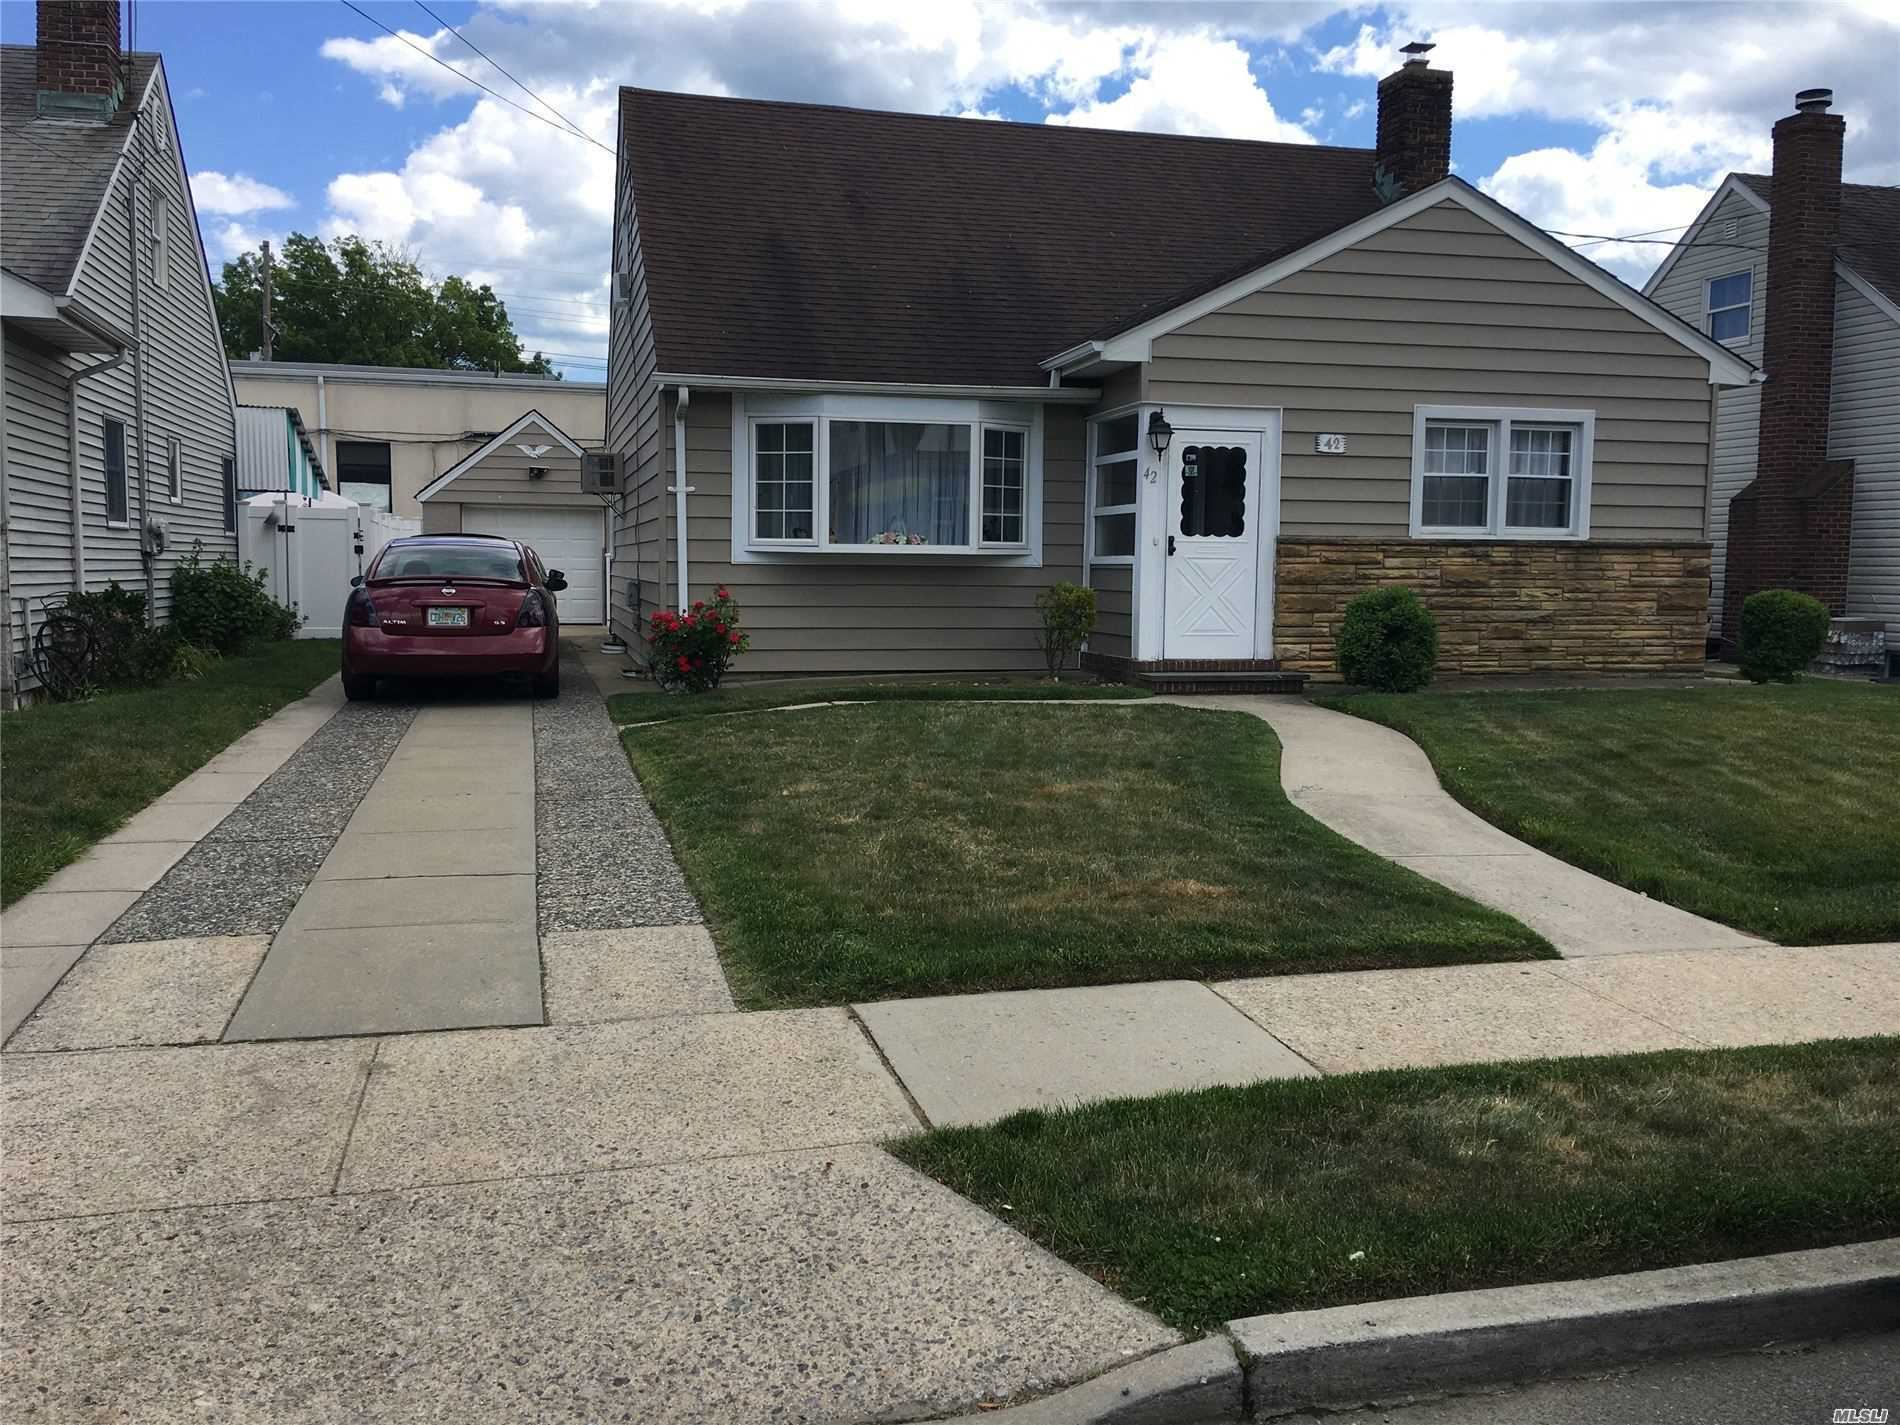 42 Evergreen Avenue, Lynbrook, NY 11563 - MLS#: 3229766